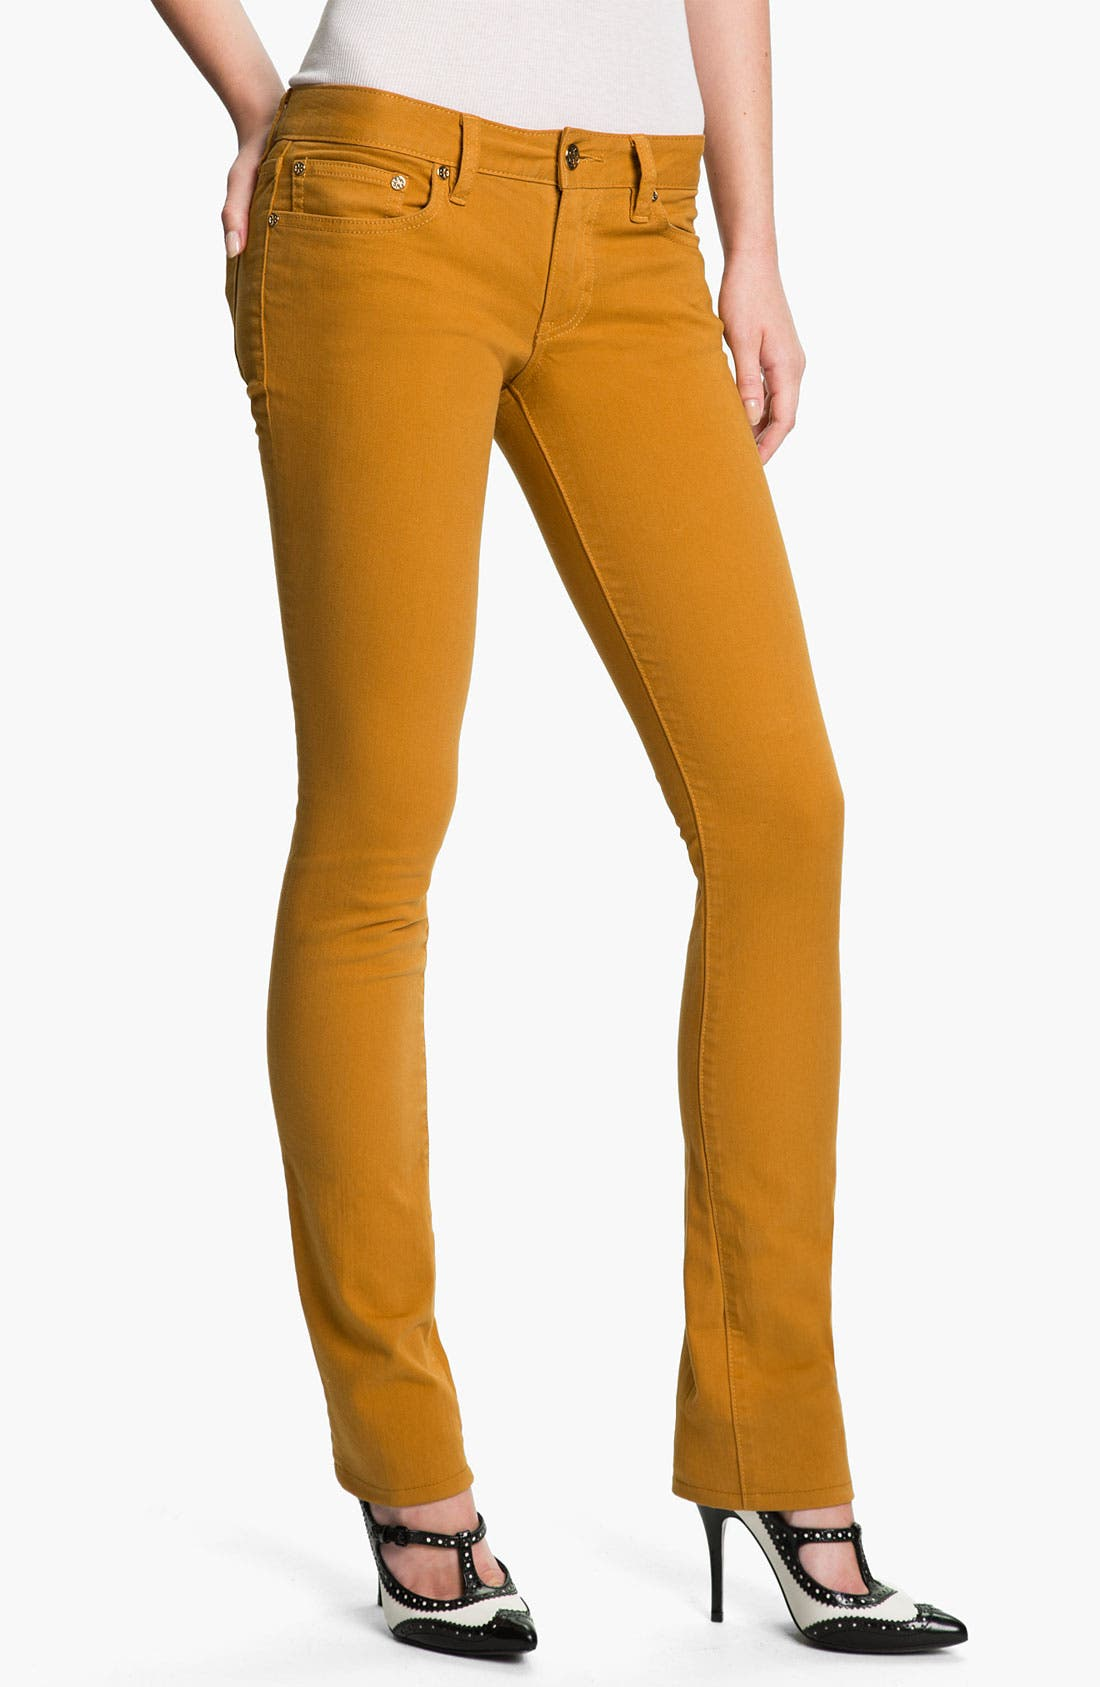 Alternate Image 1 Selected - Tory Burch 'Ivy' Skinny Stretch Jeans